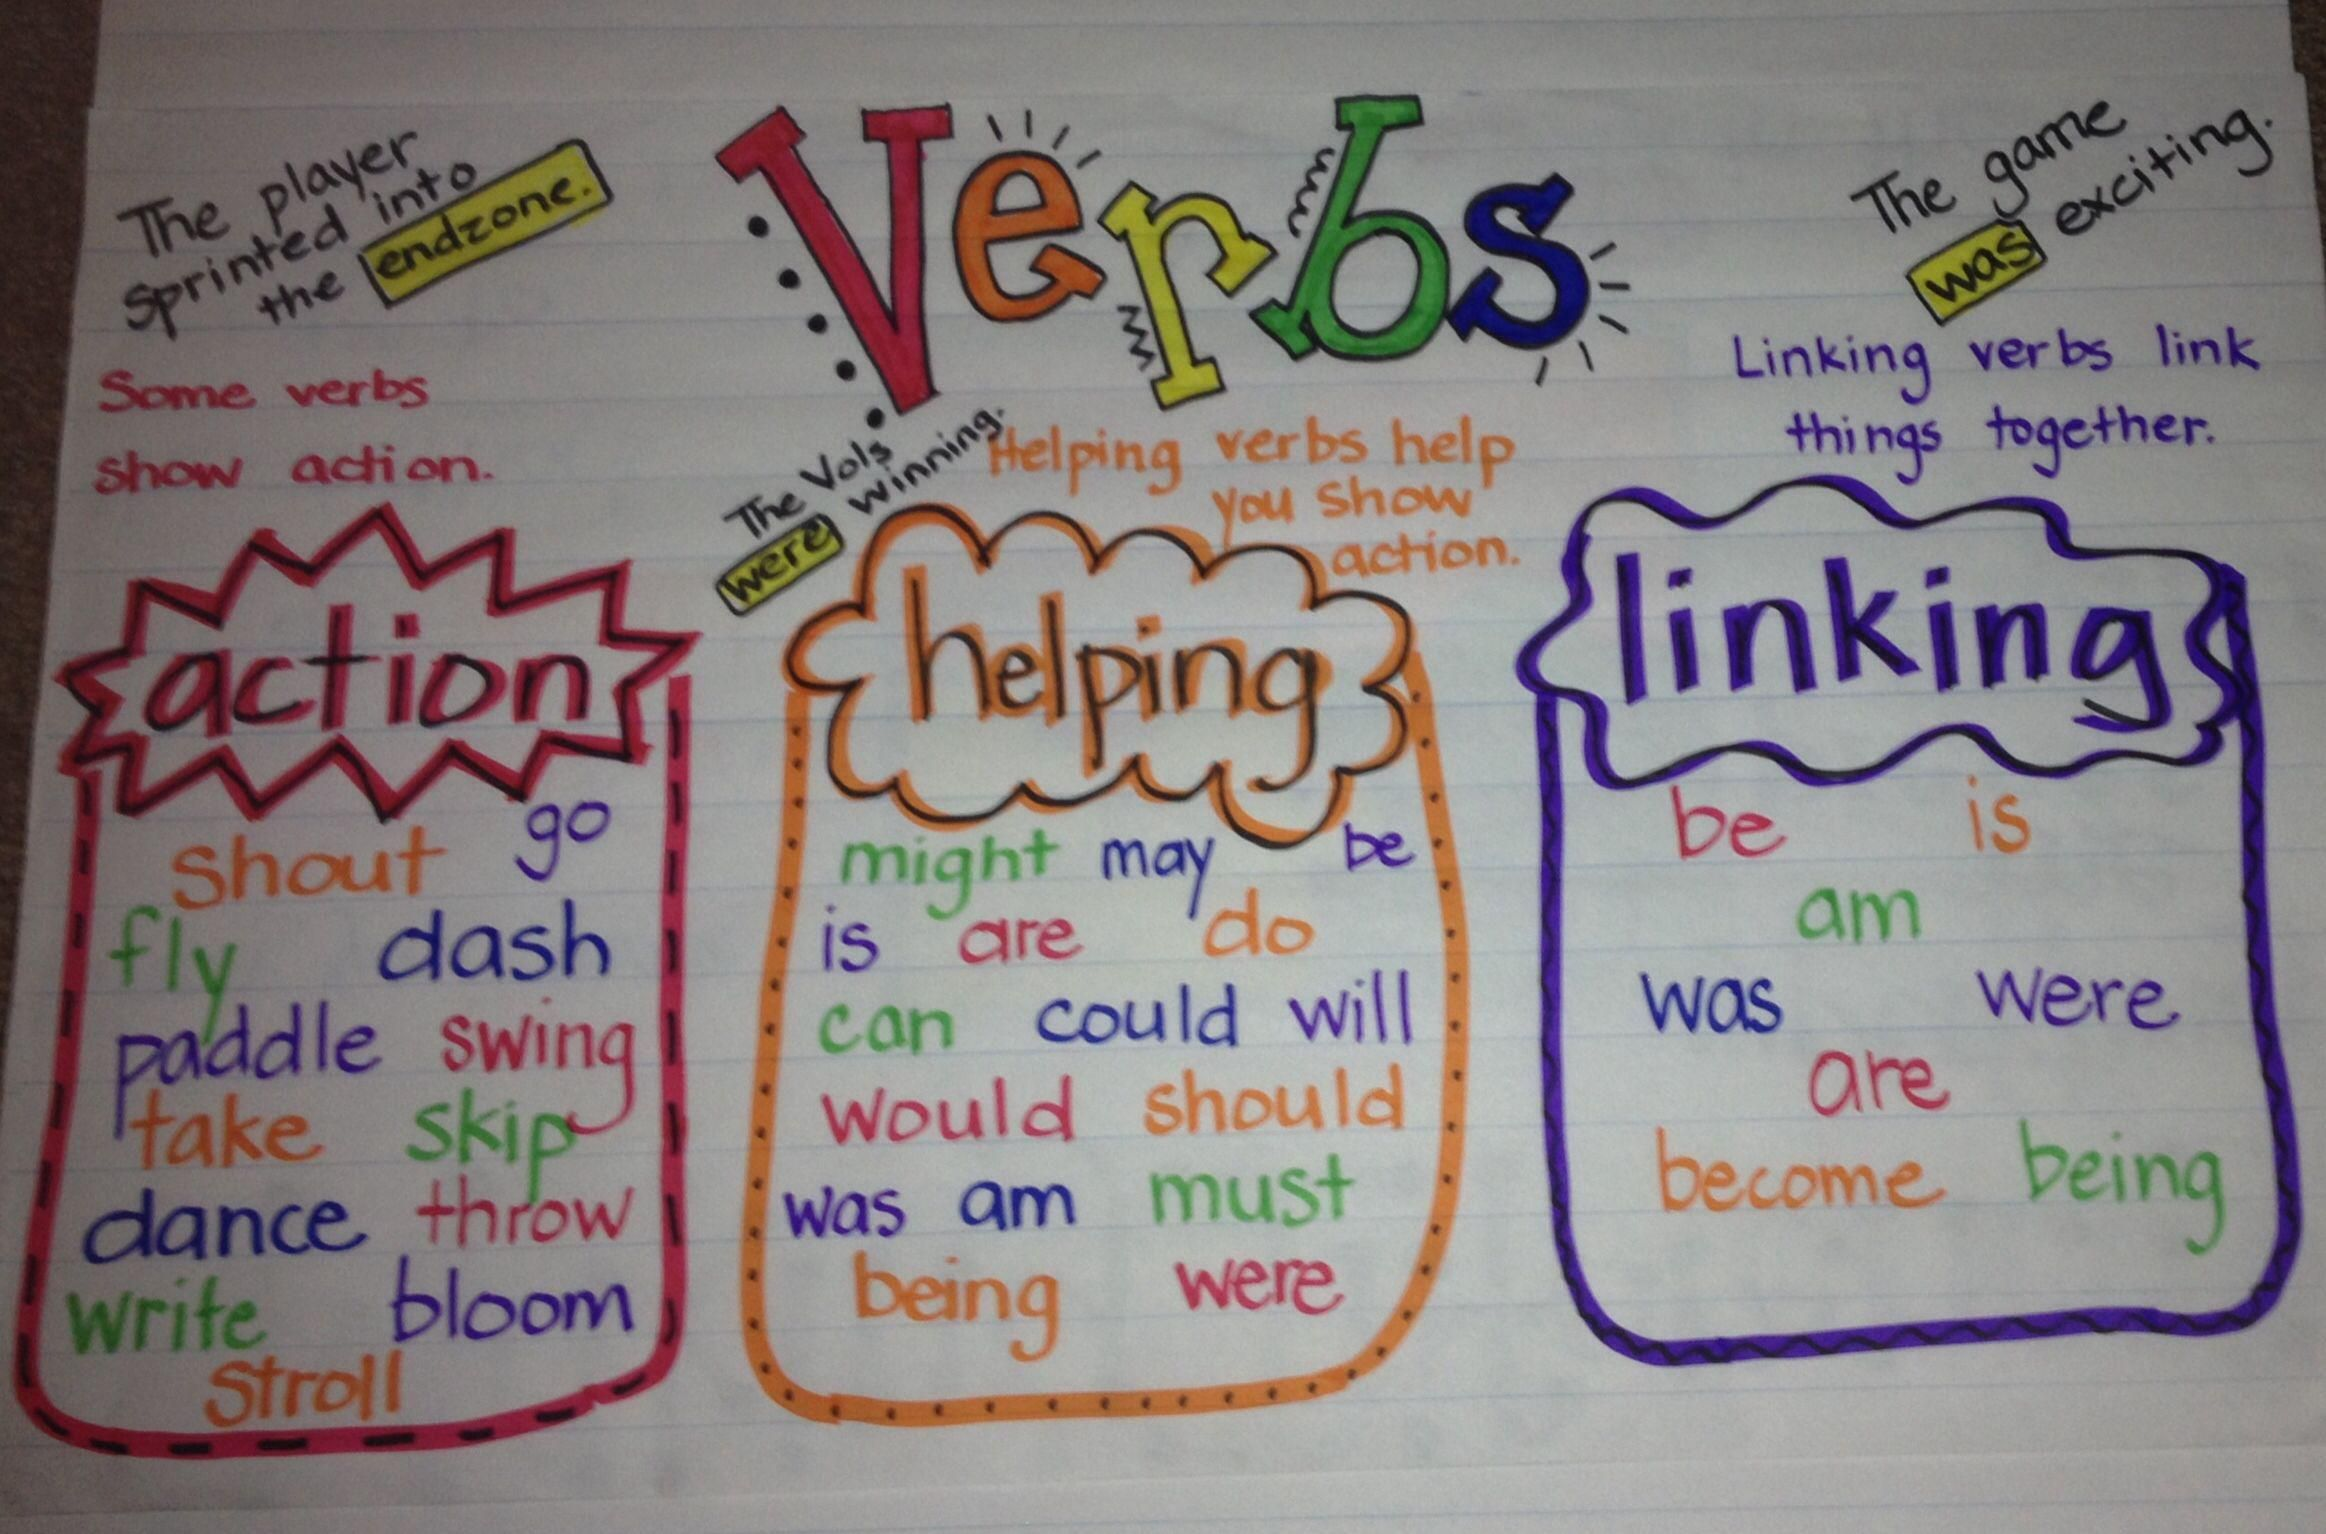 42 Linking Verbs Worksheets For Grade 2 In